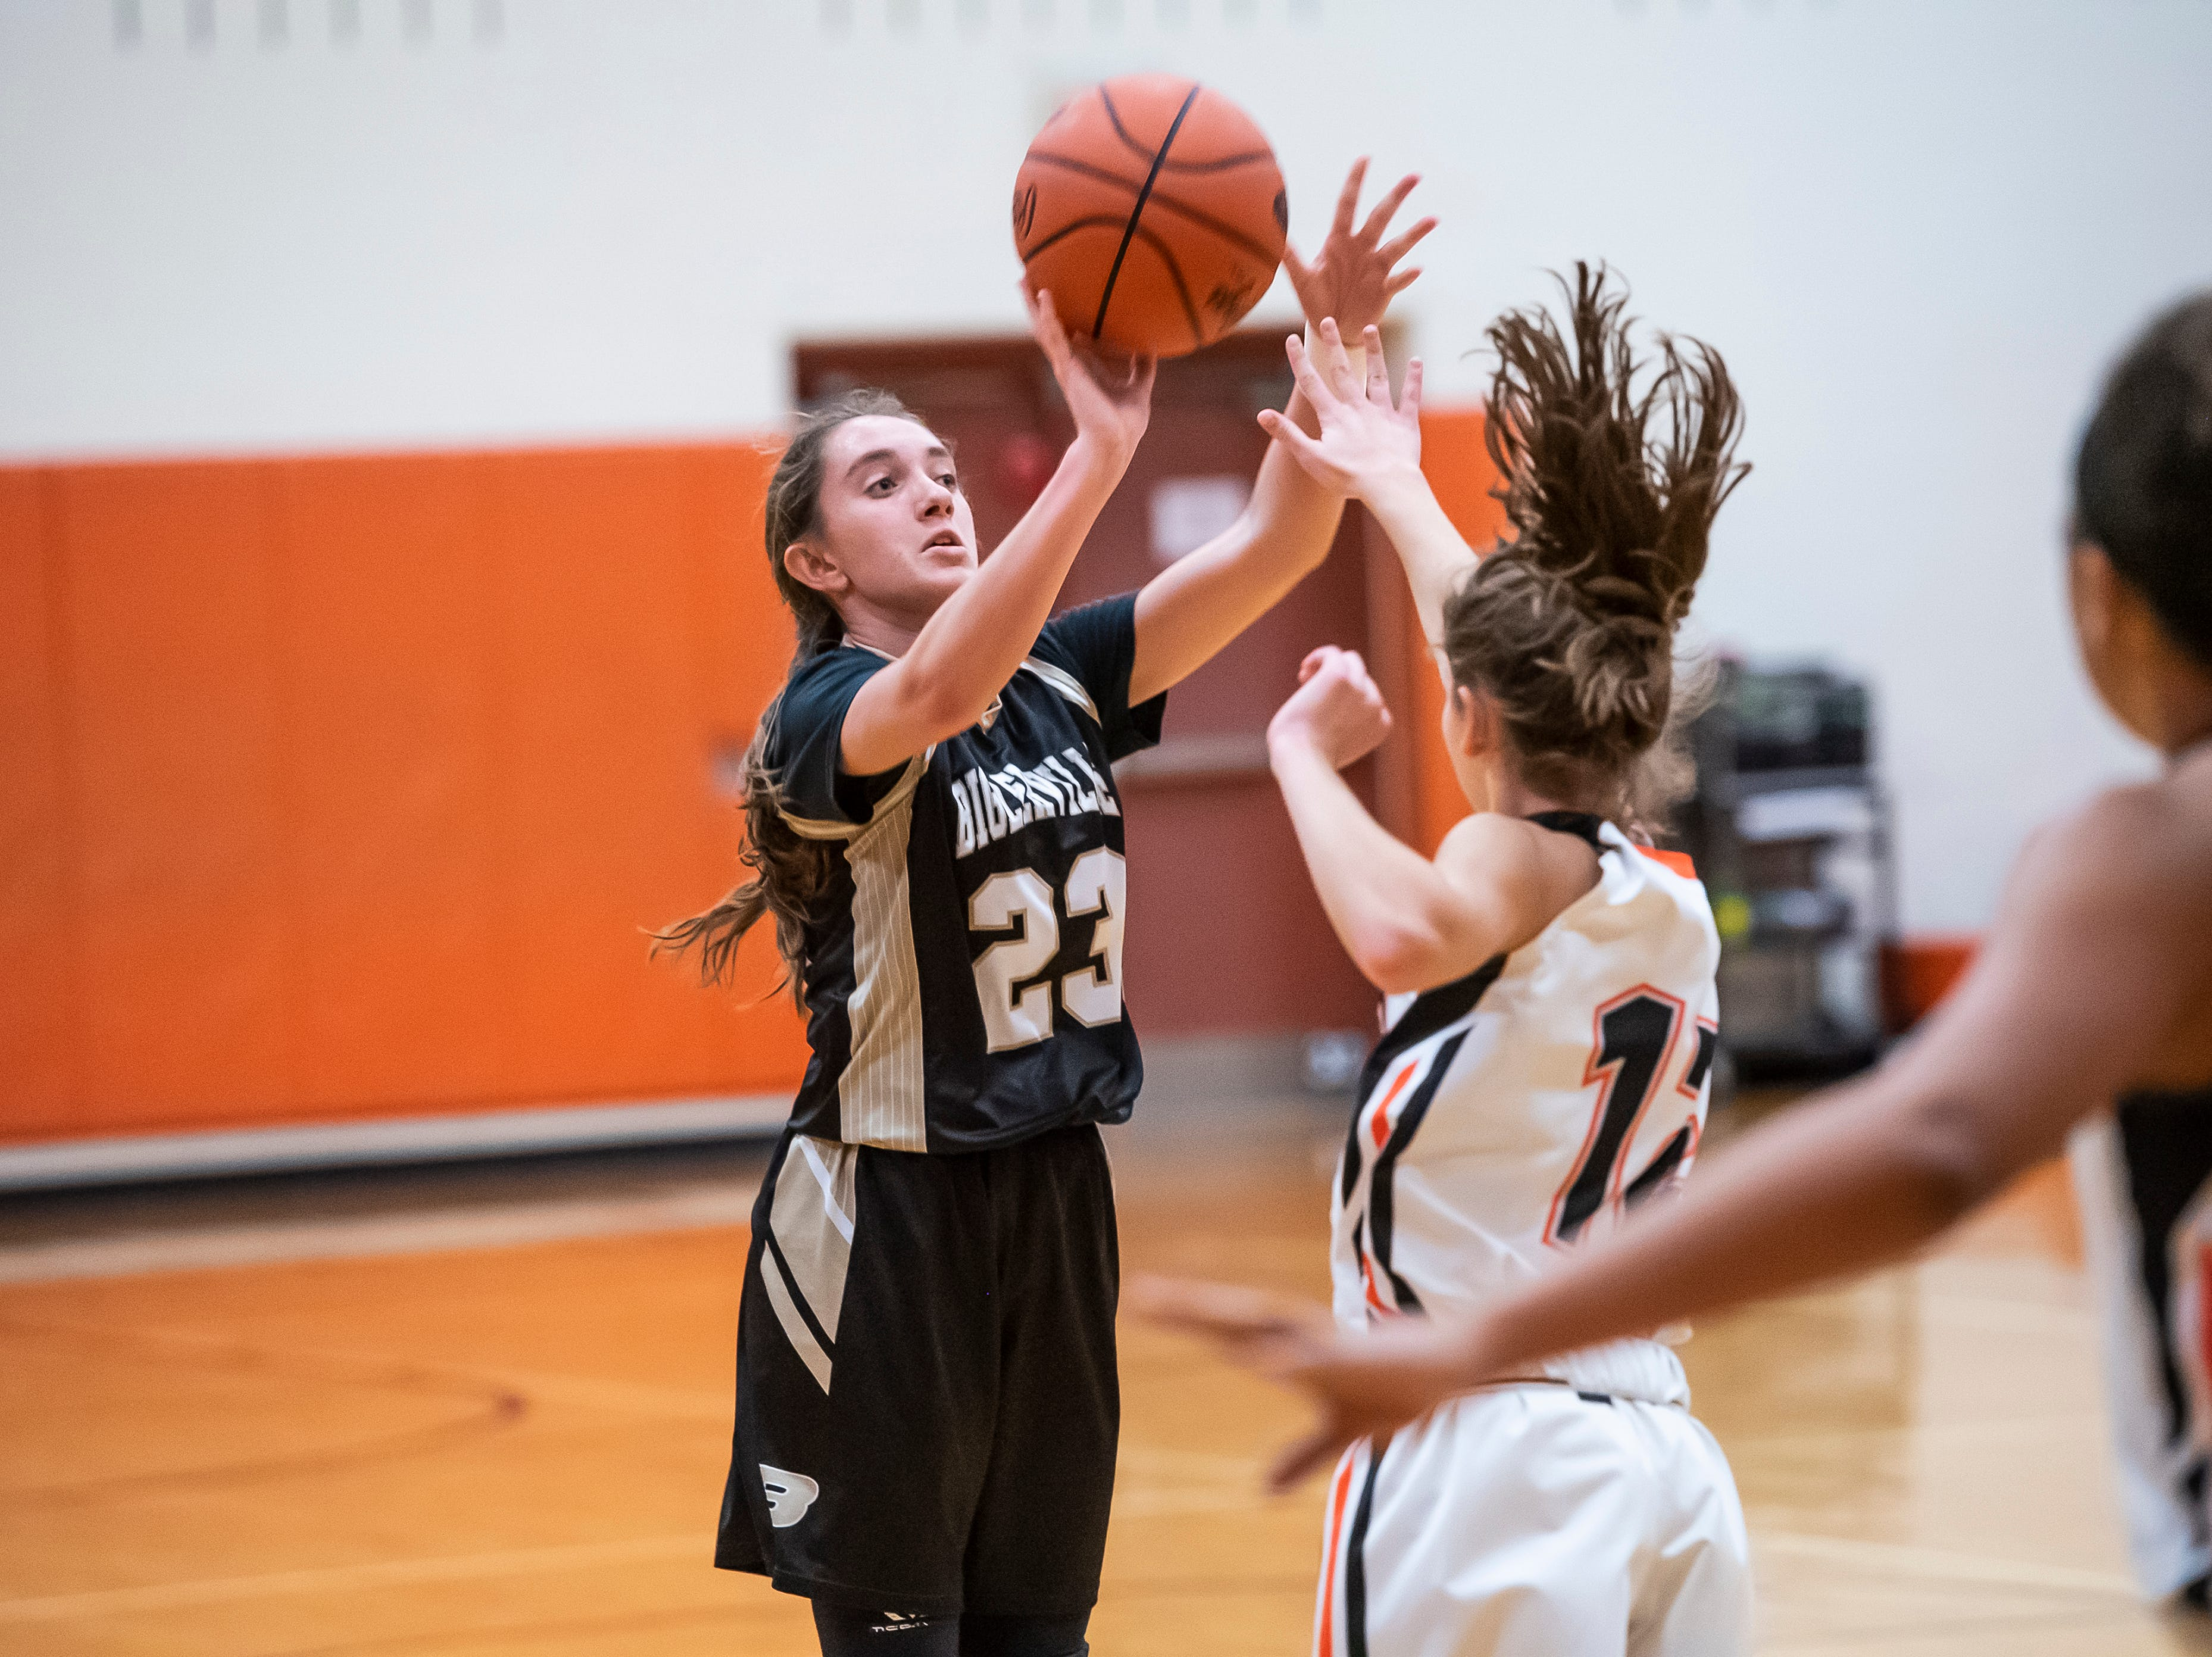 Biglerville's Katie Woolson shoots the ball during play against Hanover in the championship game of the Hanover Holiday Classic on Friday, December 28, 2018. Hanover won 30-20.